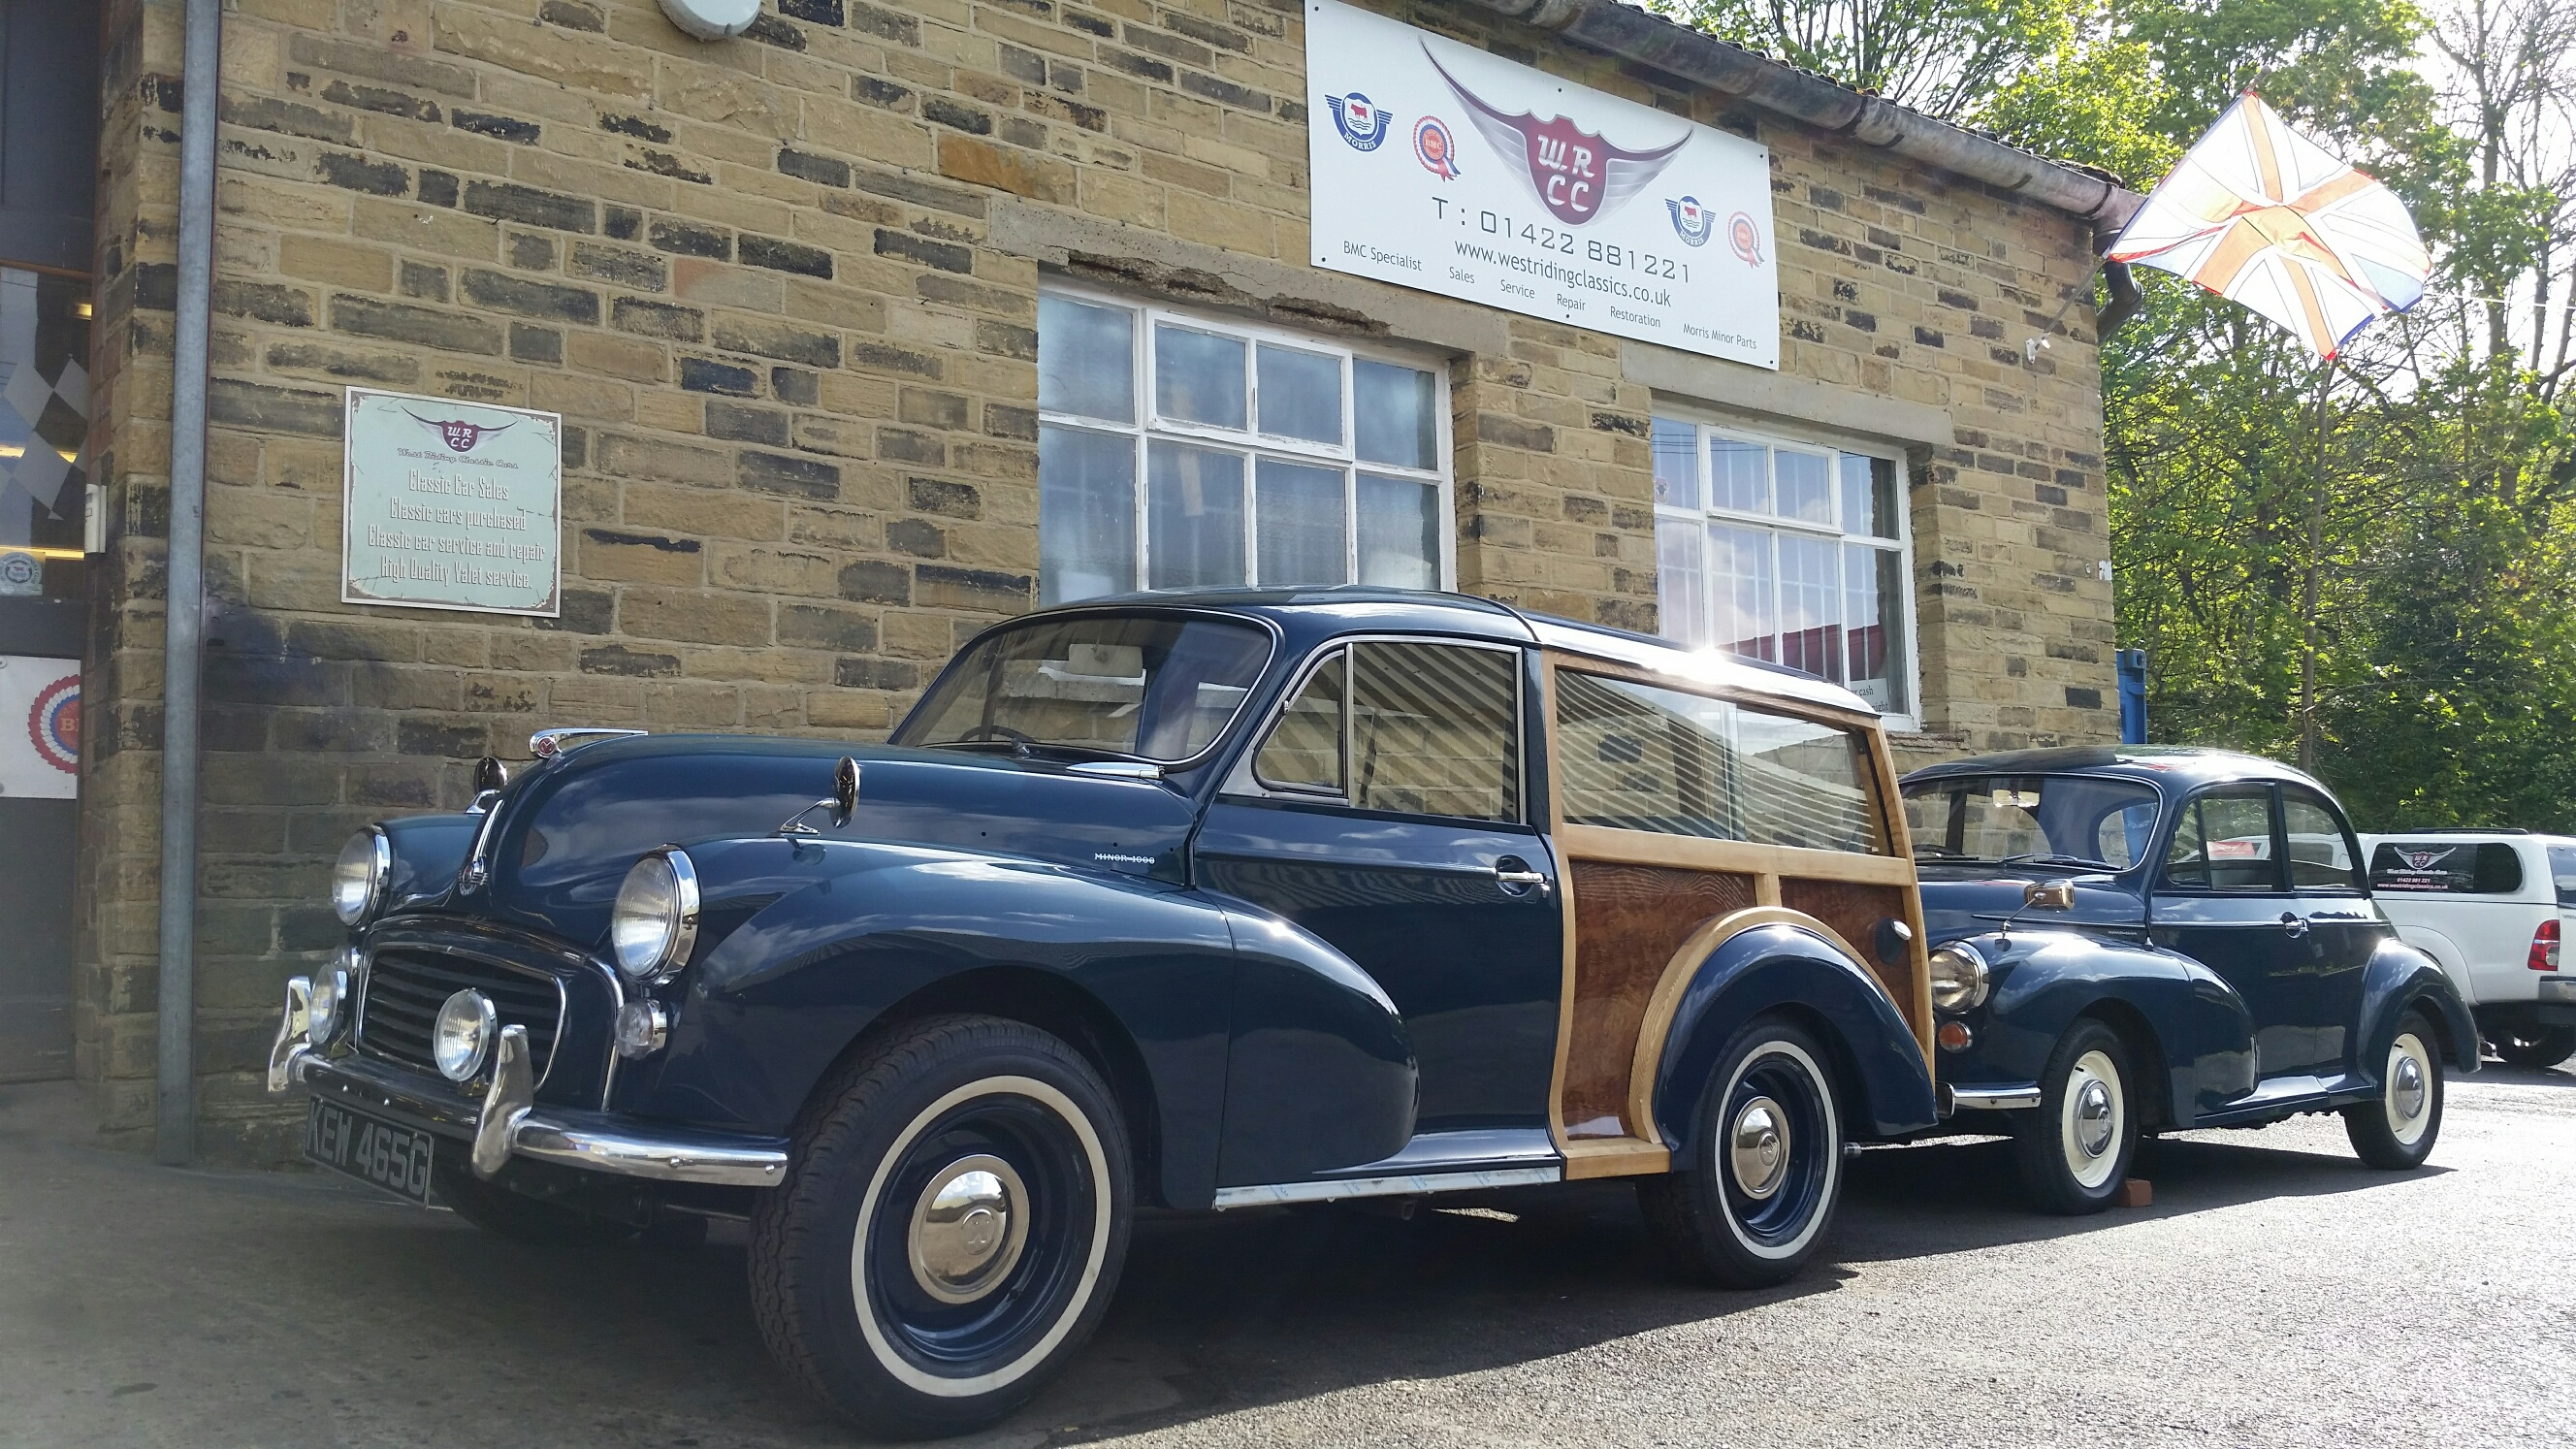 West Riding Classic Cars Ltd Halifax